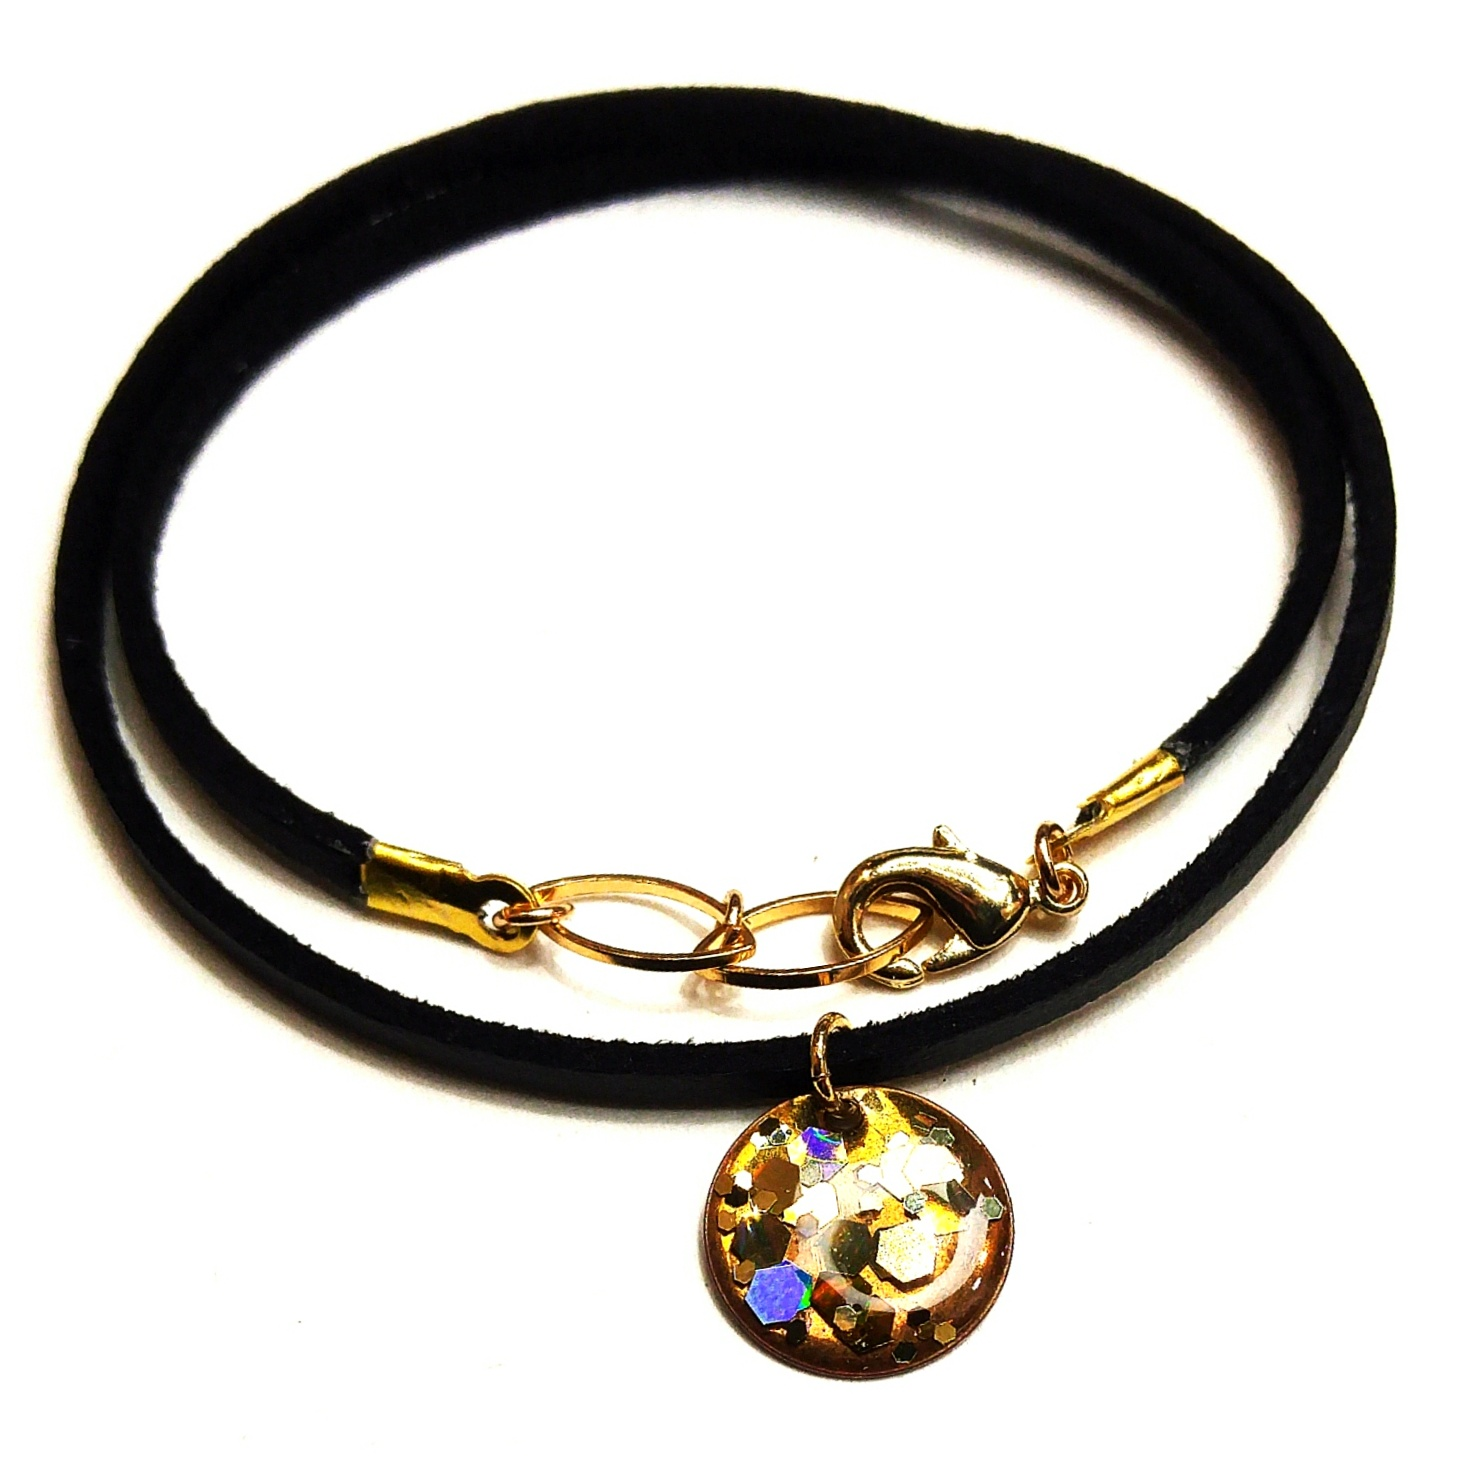 upcycled brass piece taken from a vintage belt has been adorned with some high end sparkles, set in resin